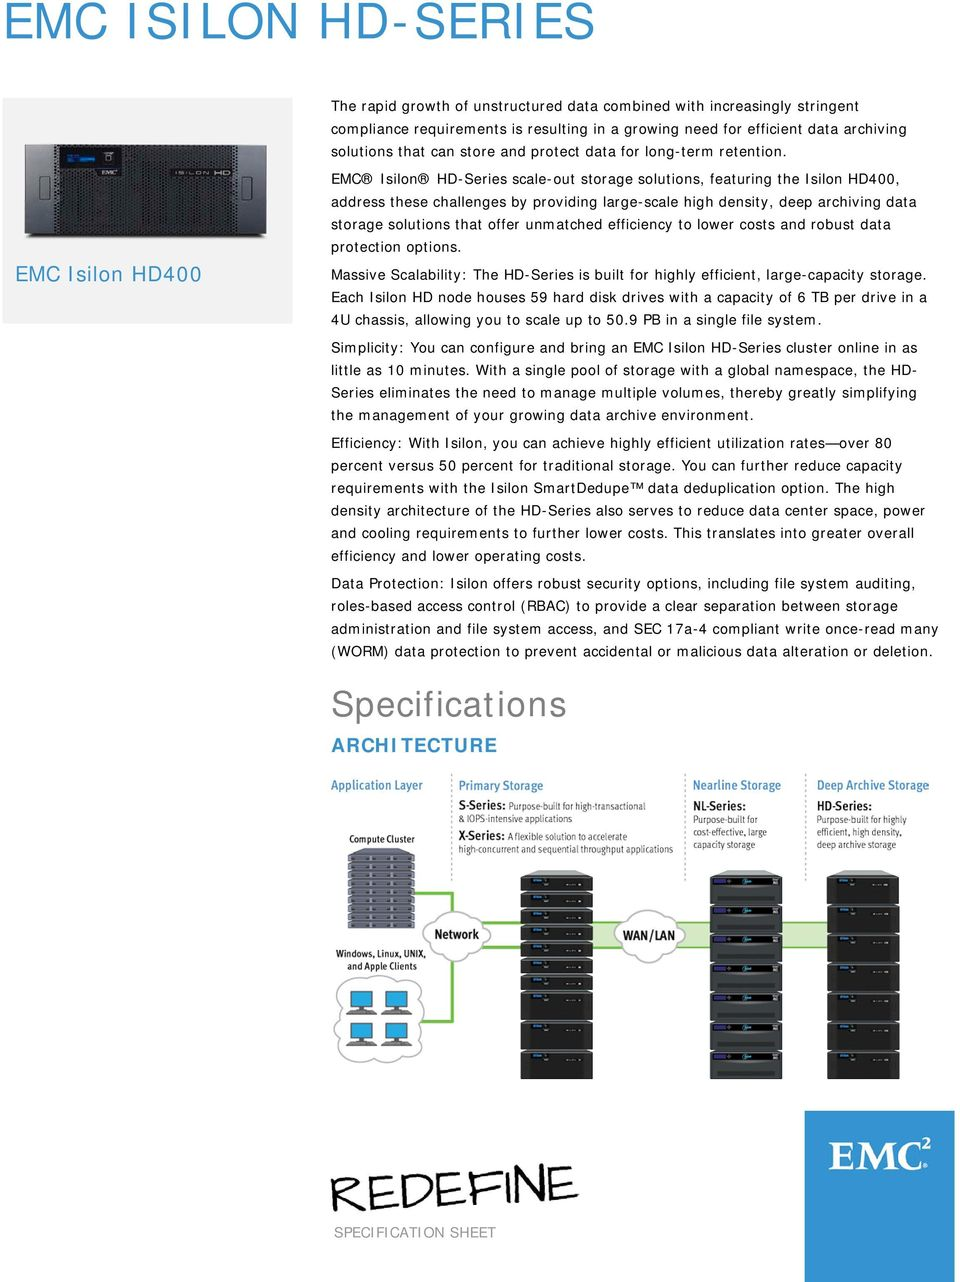 EMC Isilon HD400 EMC Isilon HD-Series scale-out storage solutions, featuring the Isilon HD400, address these challenges by providing large-scale high density, deep archiving data storage solutions